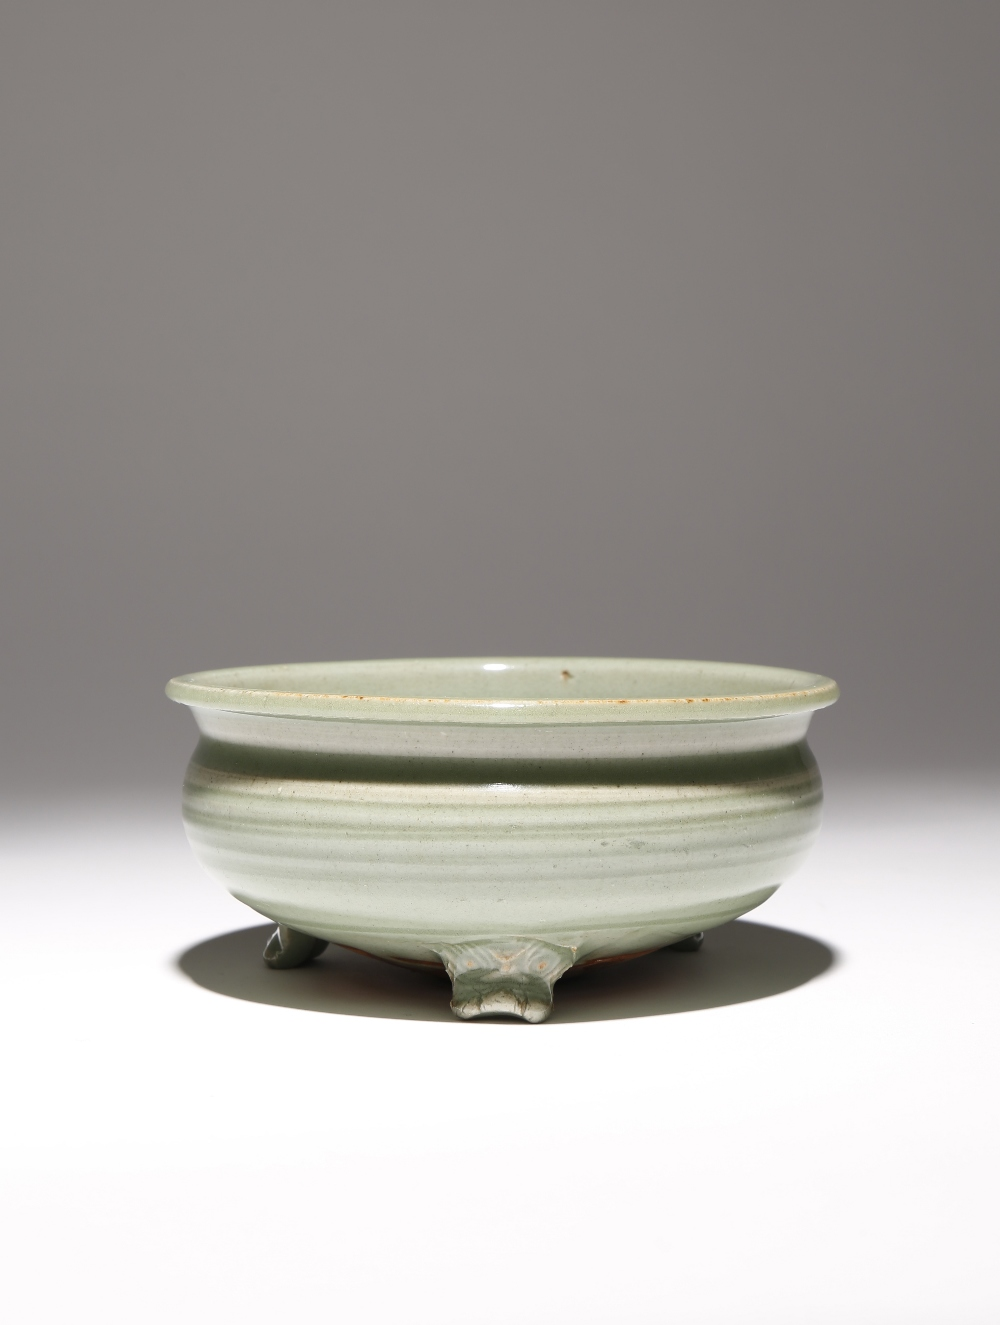 A CHINESE LONGQUAN CELADON TRIPOD INCENSE BURNER 15TH/16TH CENTURY The compressed body rising to